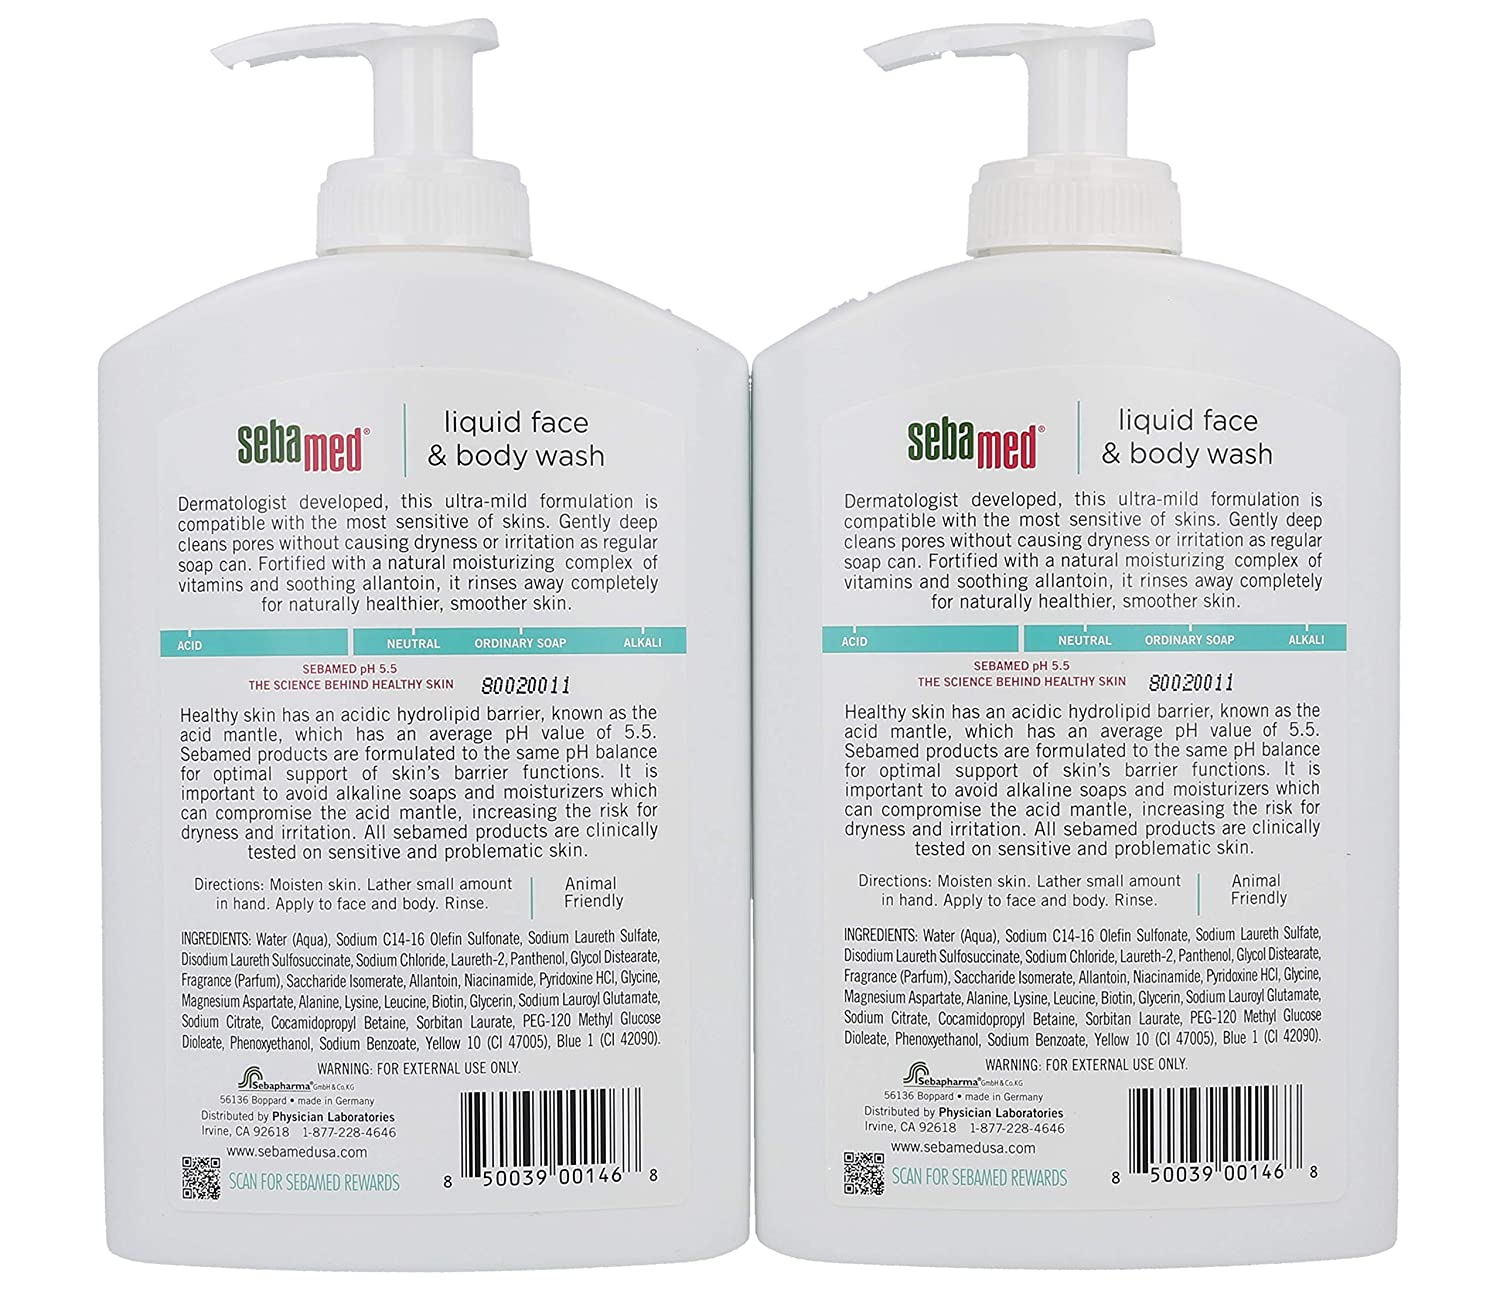 Sebamed Liquid Face Body Wash with Pump, 400ml, 2 Pack